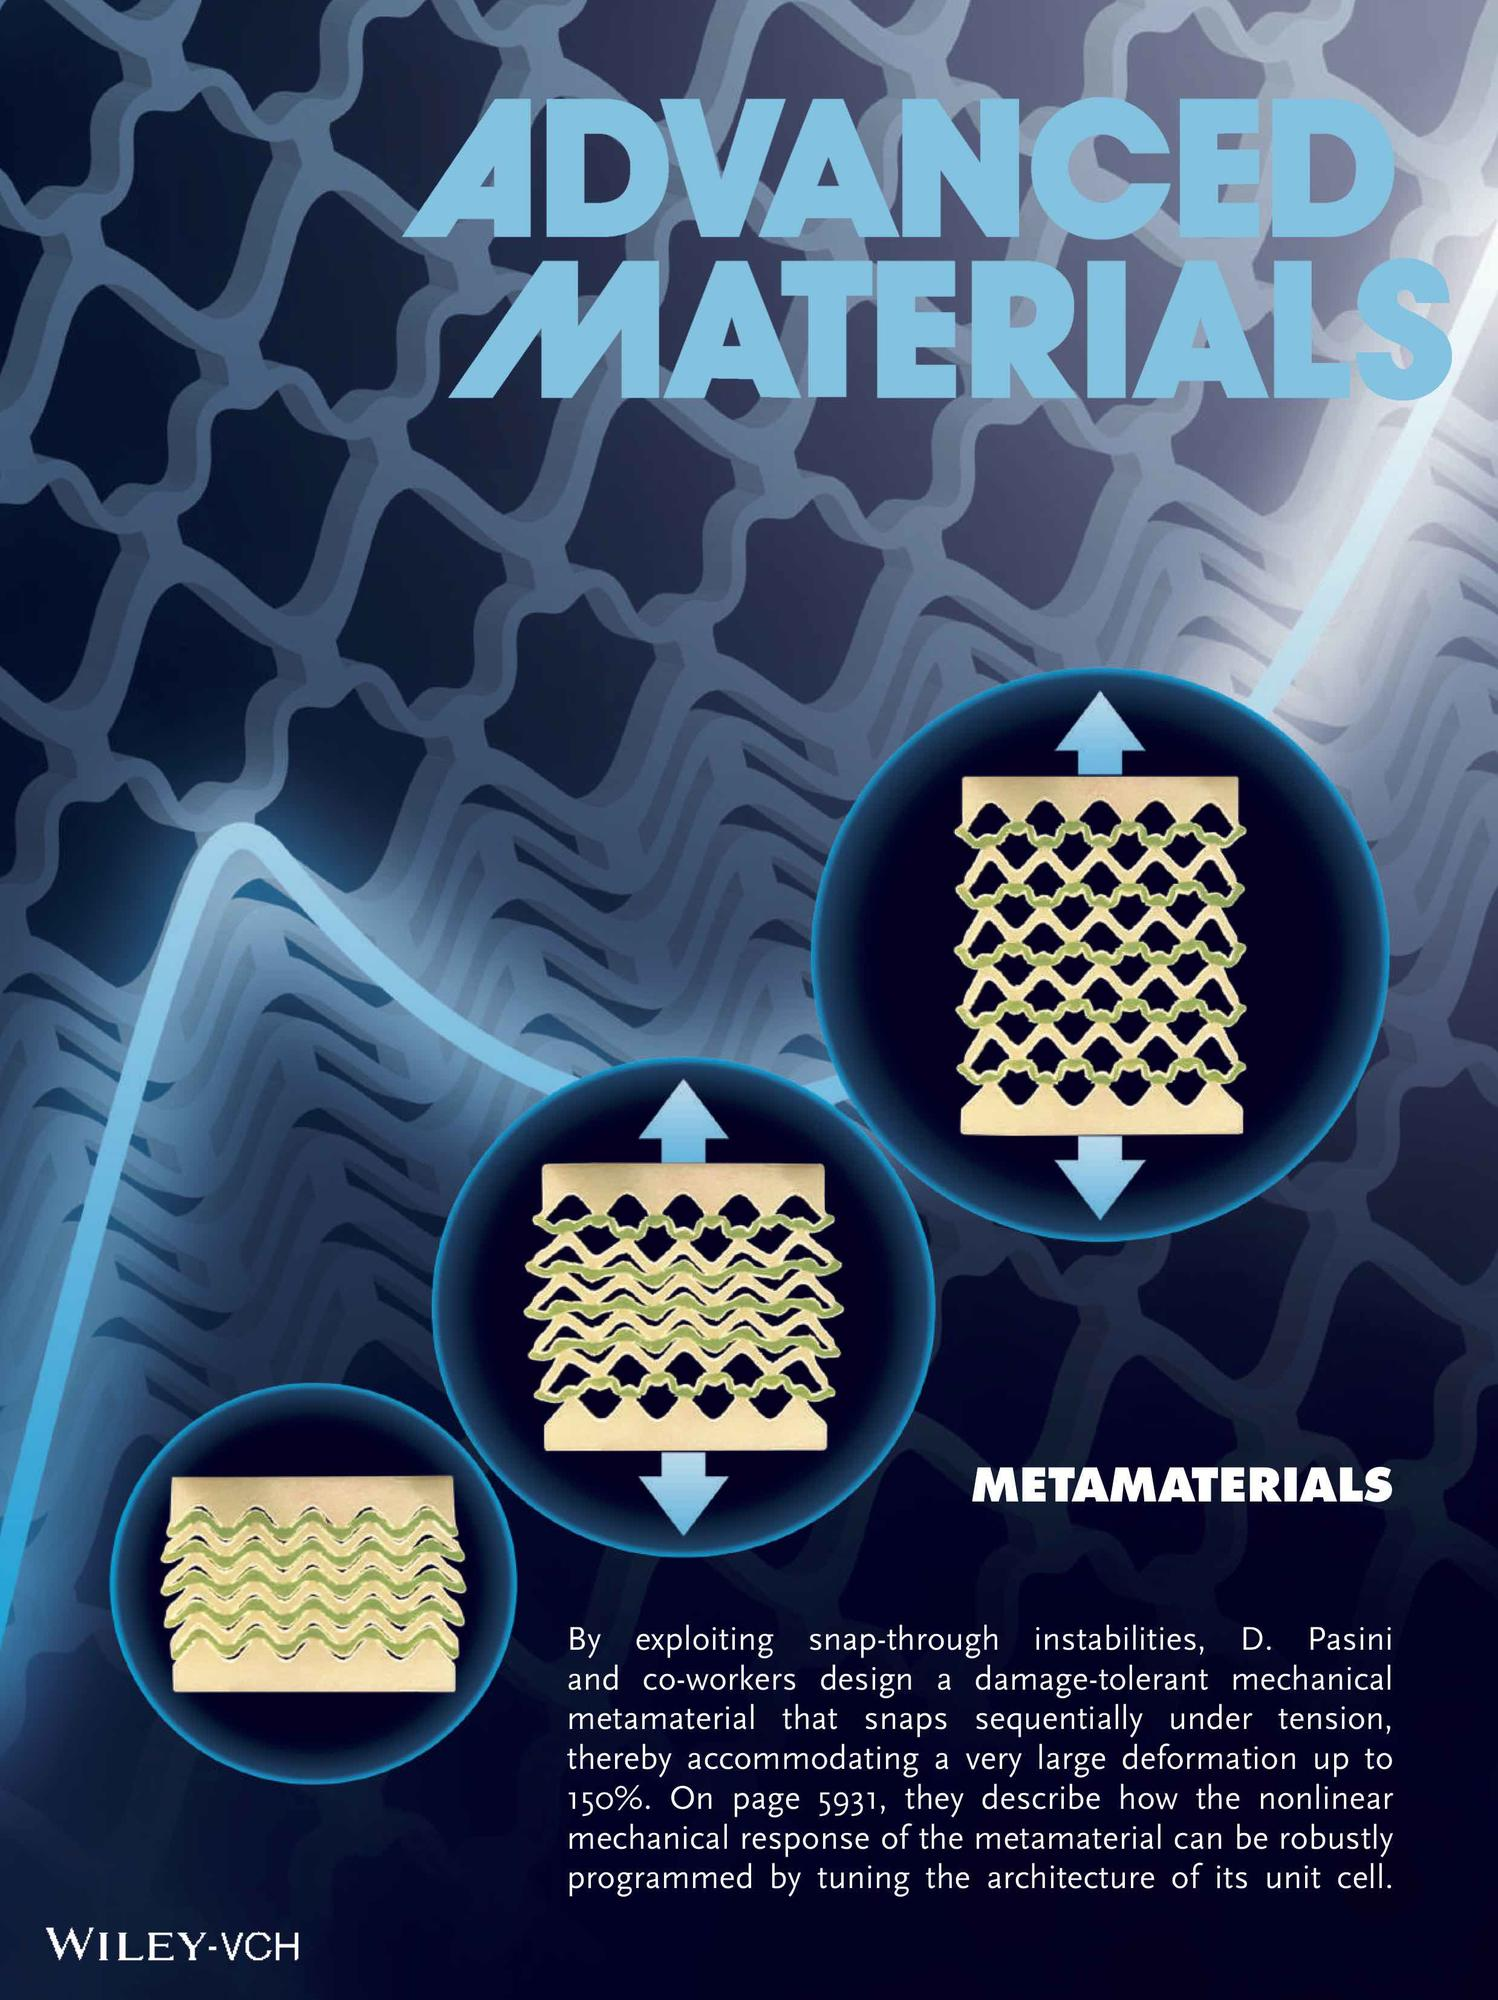 snapping metamaterial